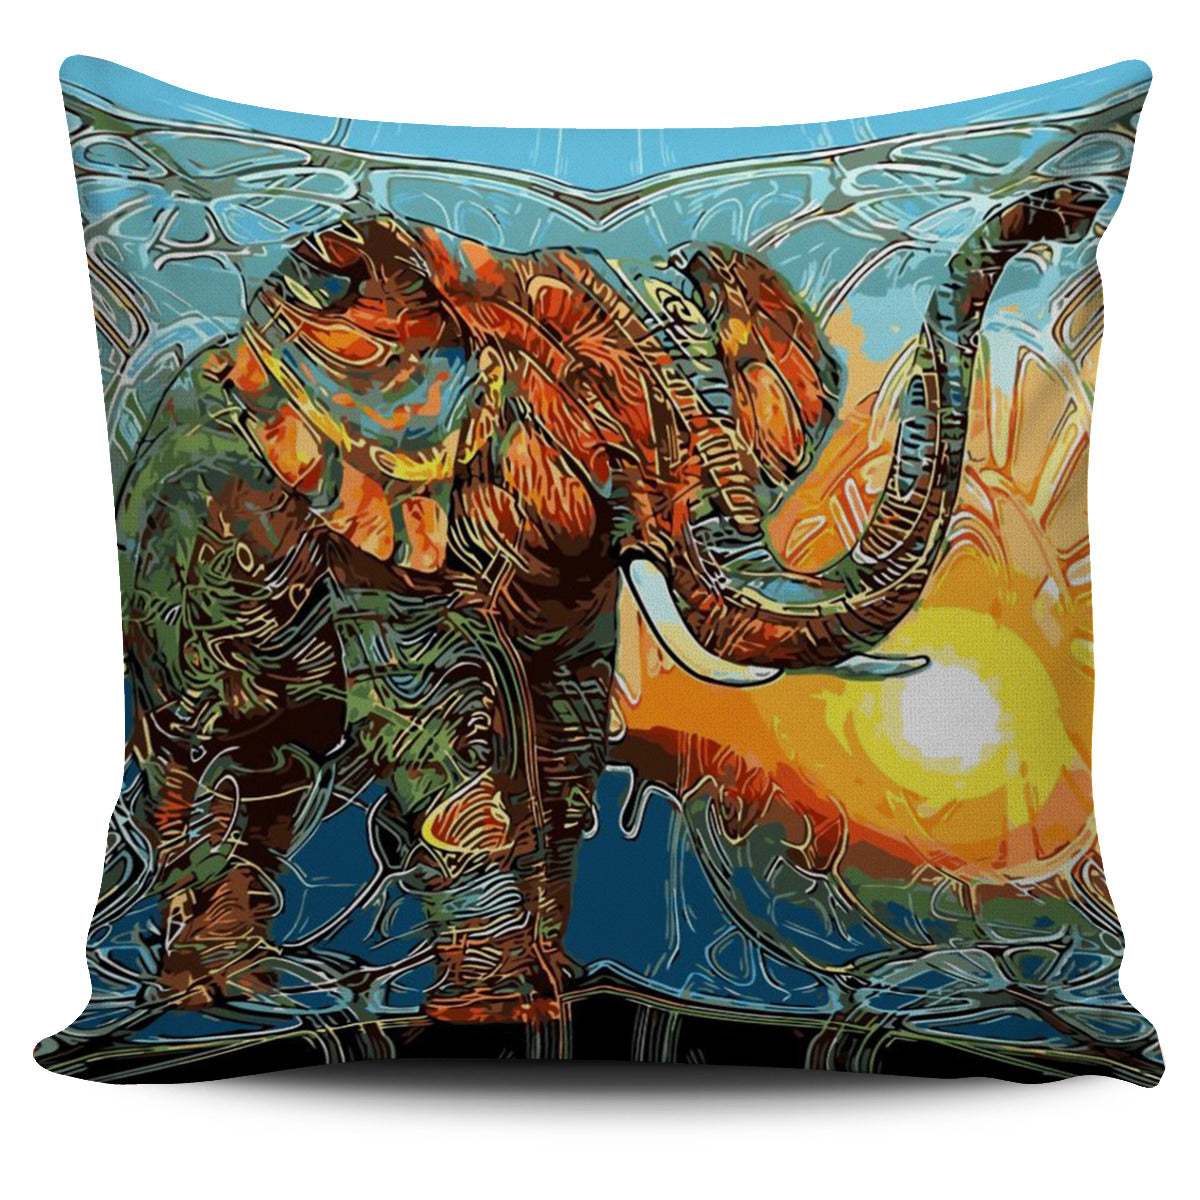 Abstract Colorful Elephant Pillow Cover - L'univers-karma